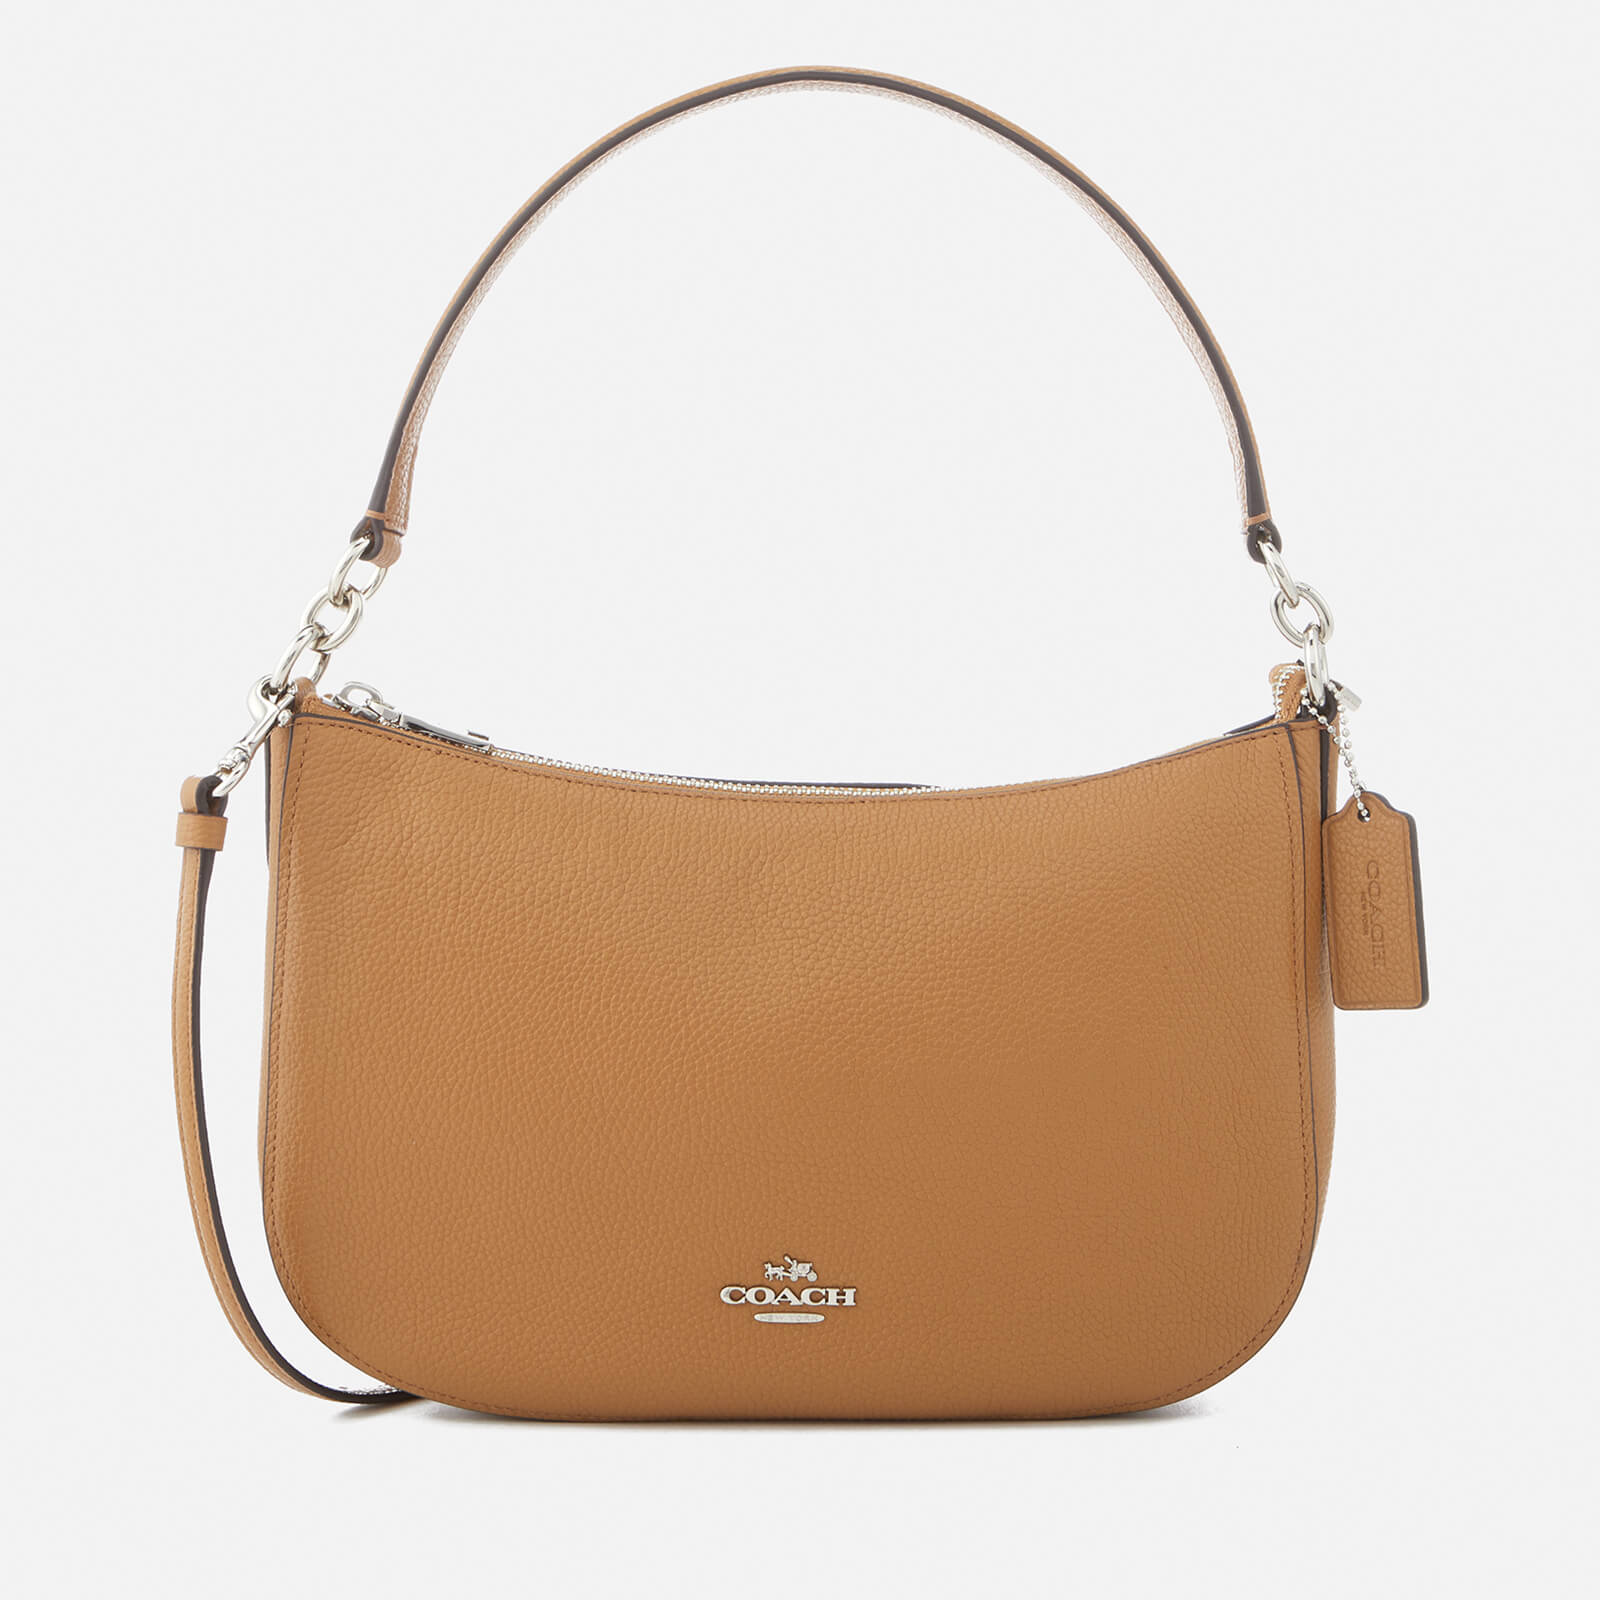 Coach Luxury Accessories Shop Online At Coggles Swagger 20 In Pebbled Leather Peach Womens Chelsea Cross Body Bag Tan